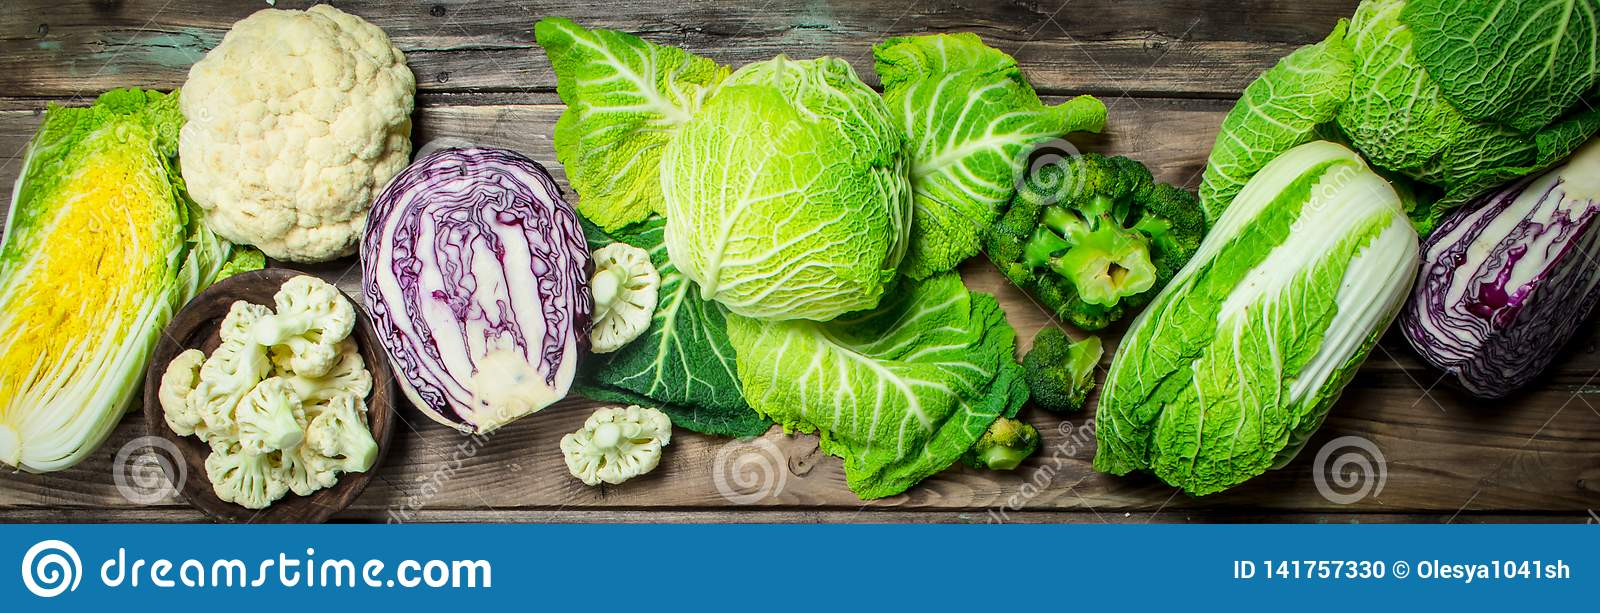 Lot of fresh juicy cabbage